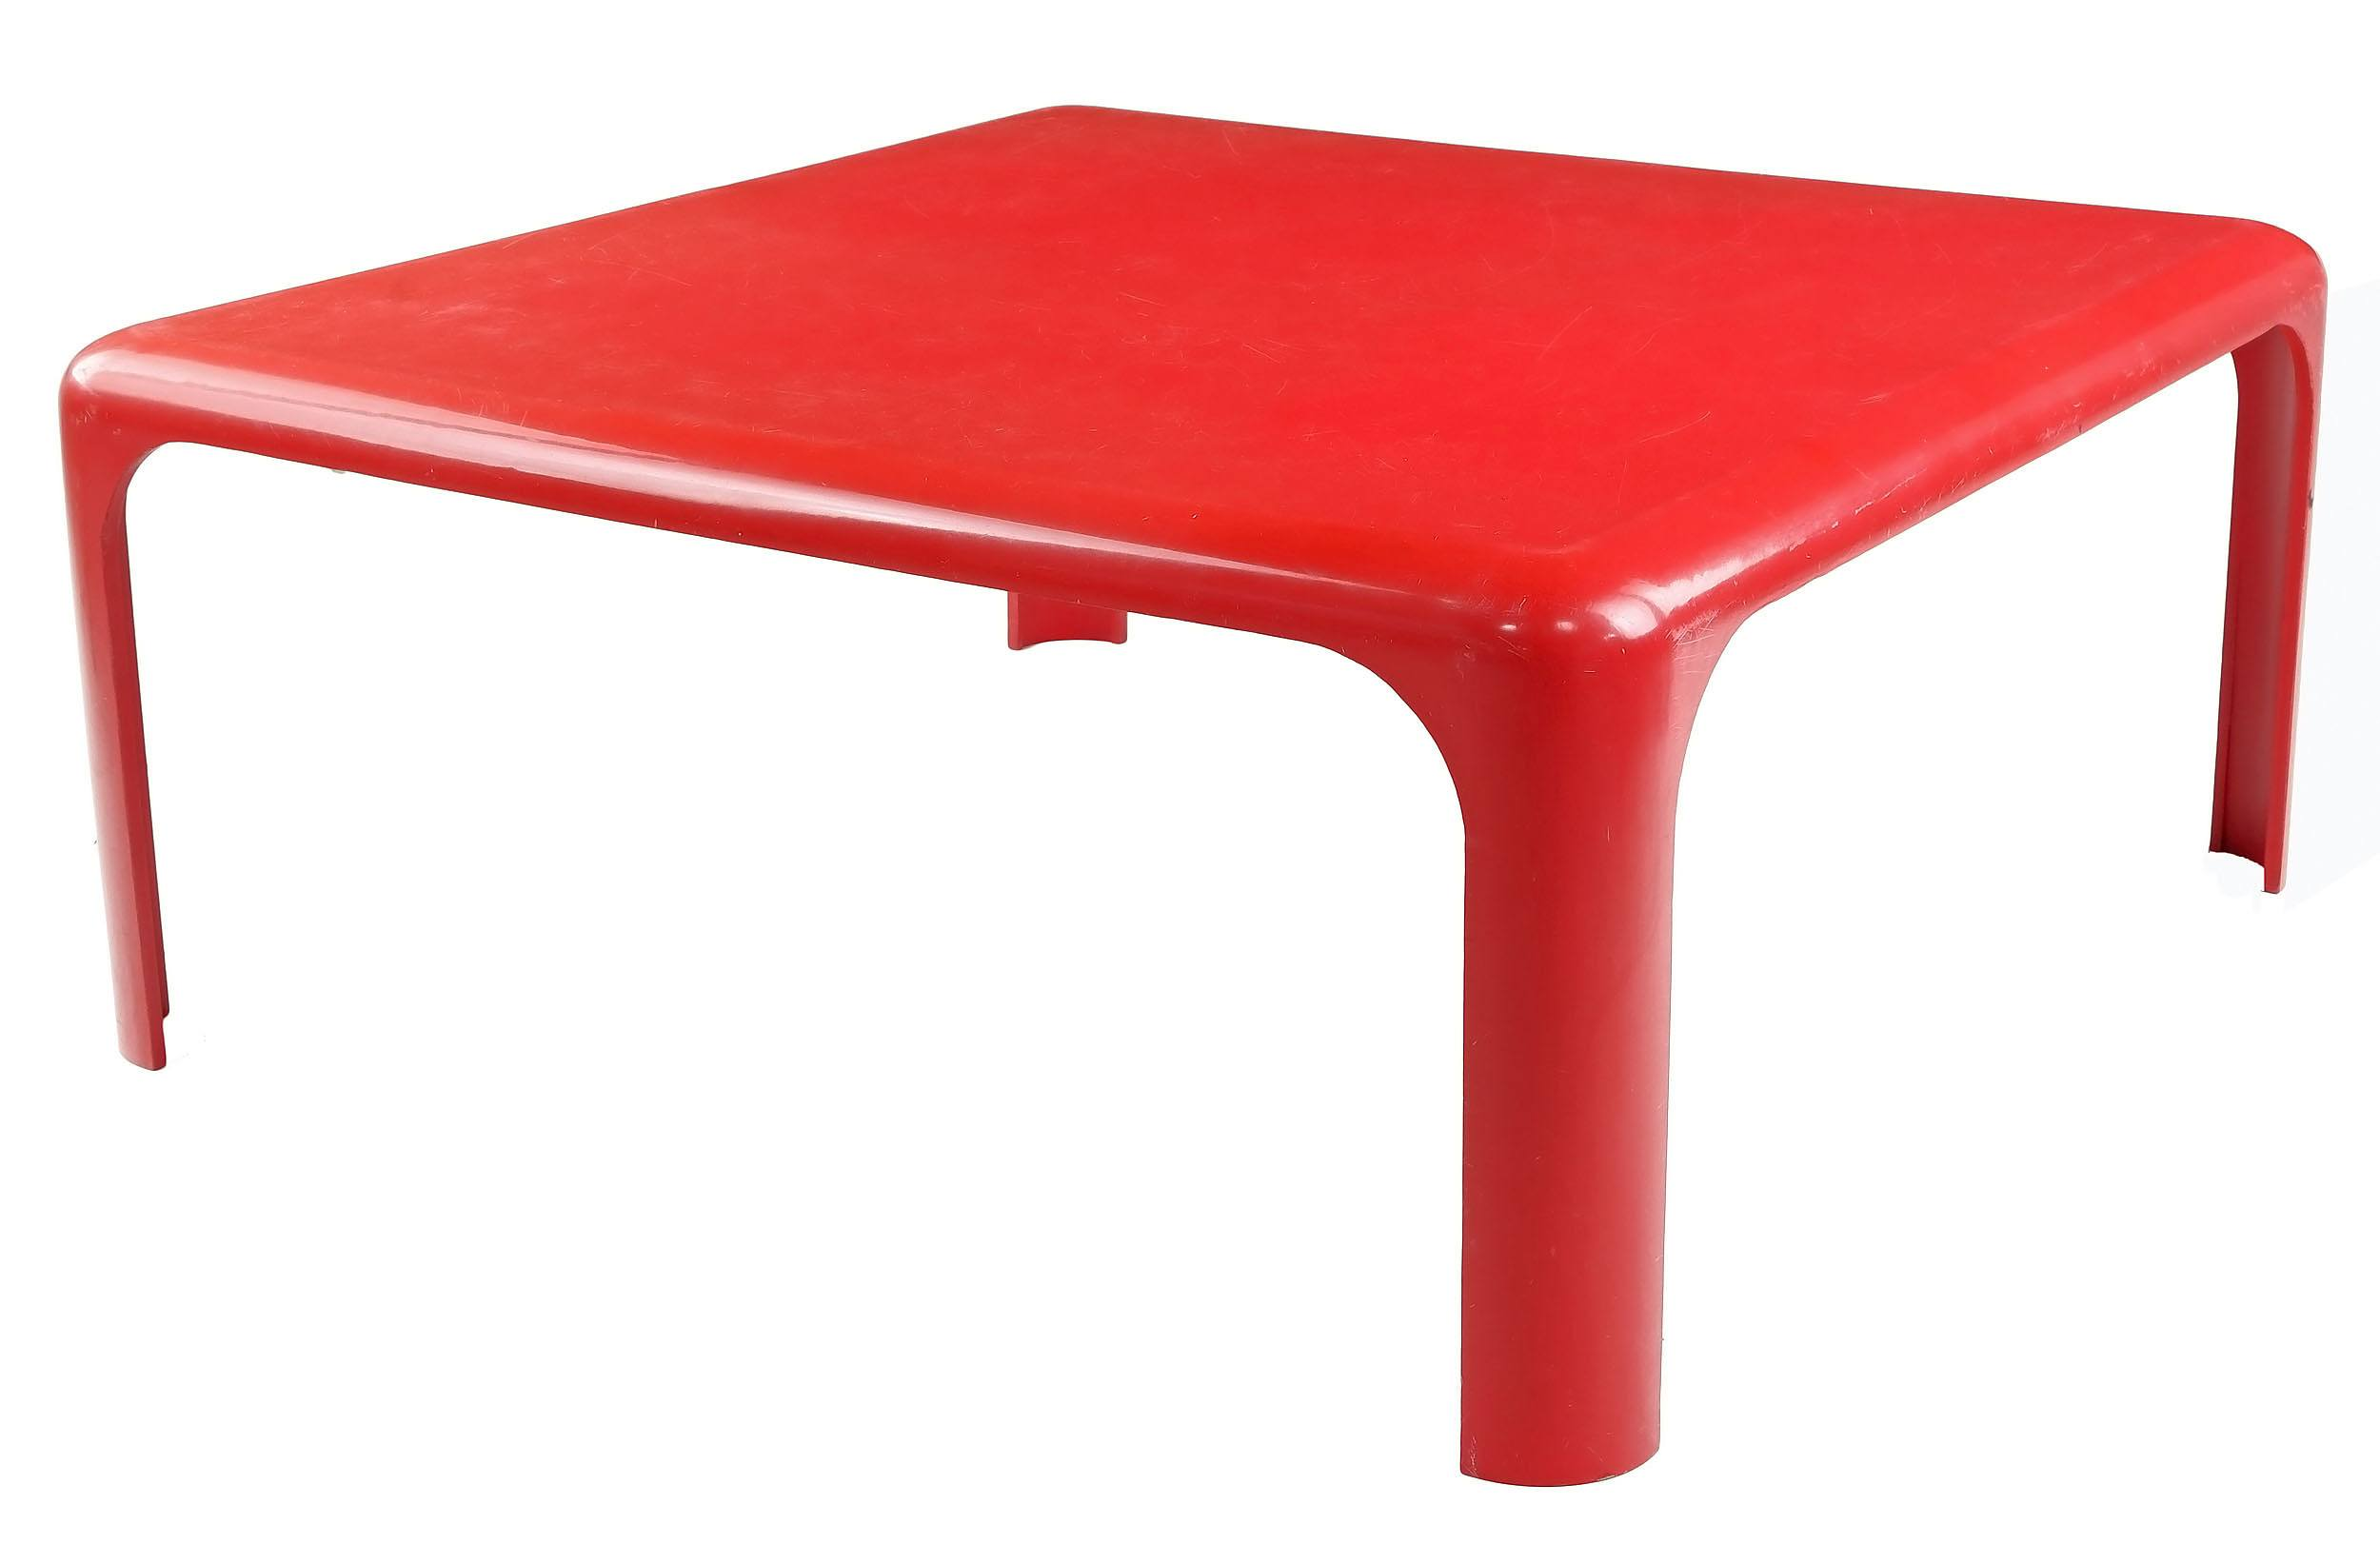 'Vico Magistretti (Italy 1920-2006) Demetrio 70 Coffee Table, Reinforced Resin, Manufactured by Artimede Circa 1970s'